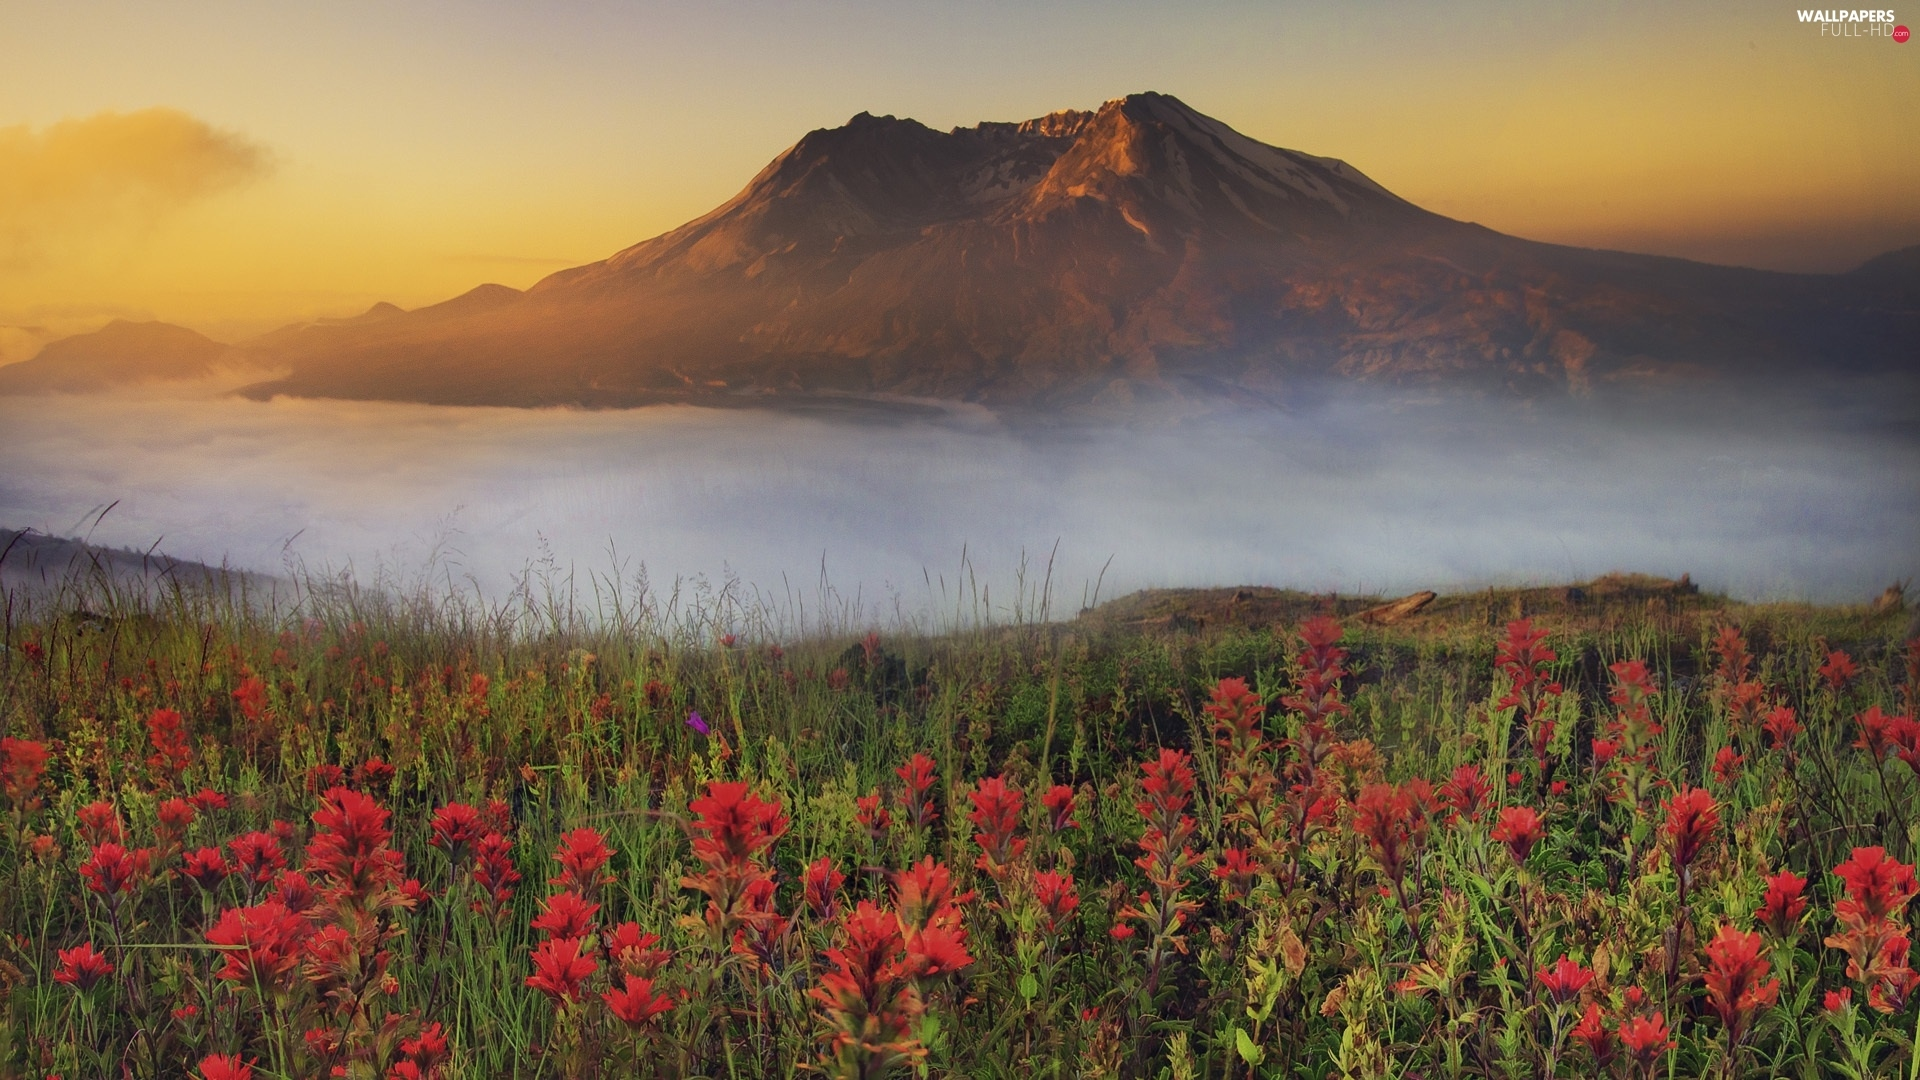 Fog, Flowers, mountains